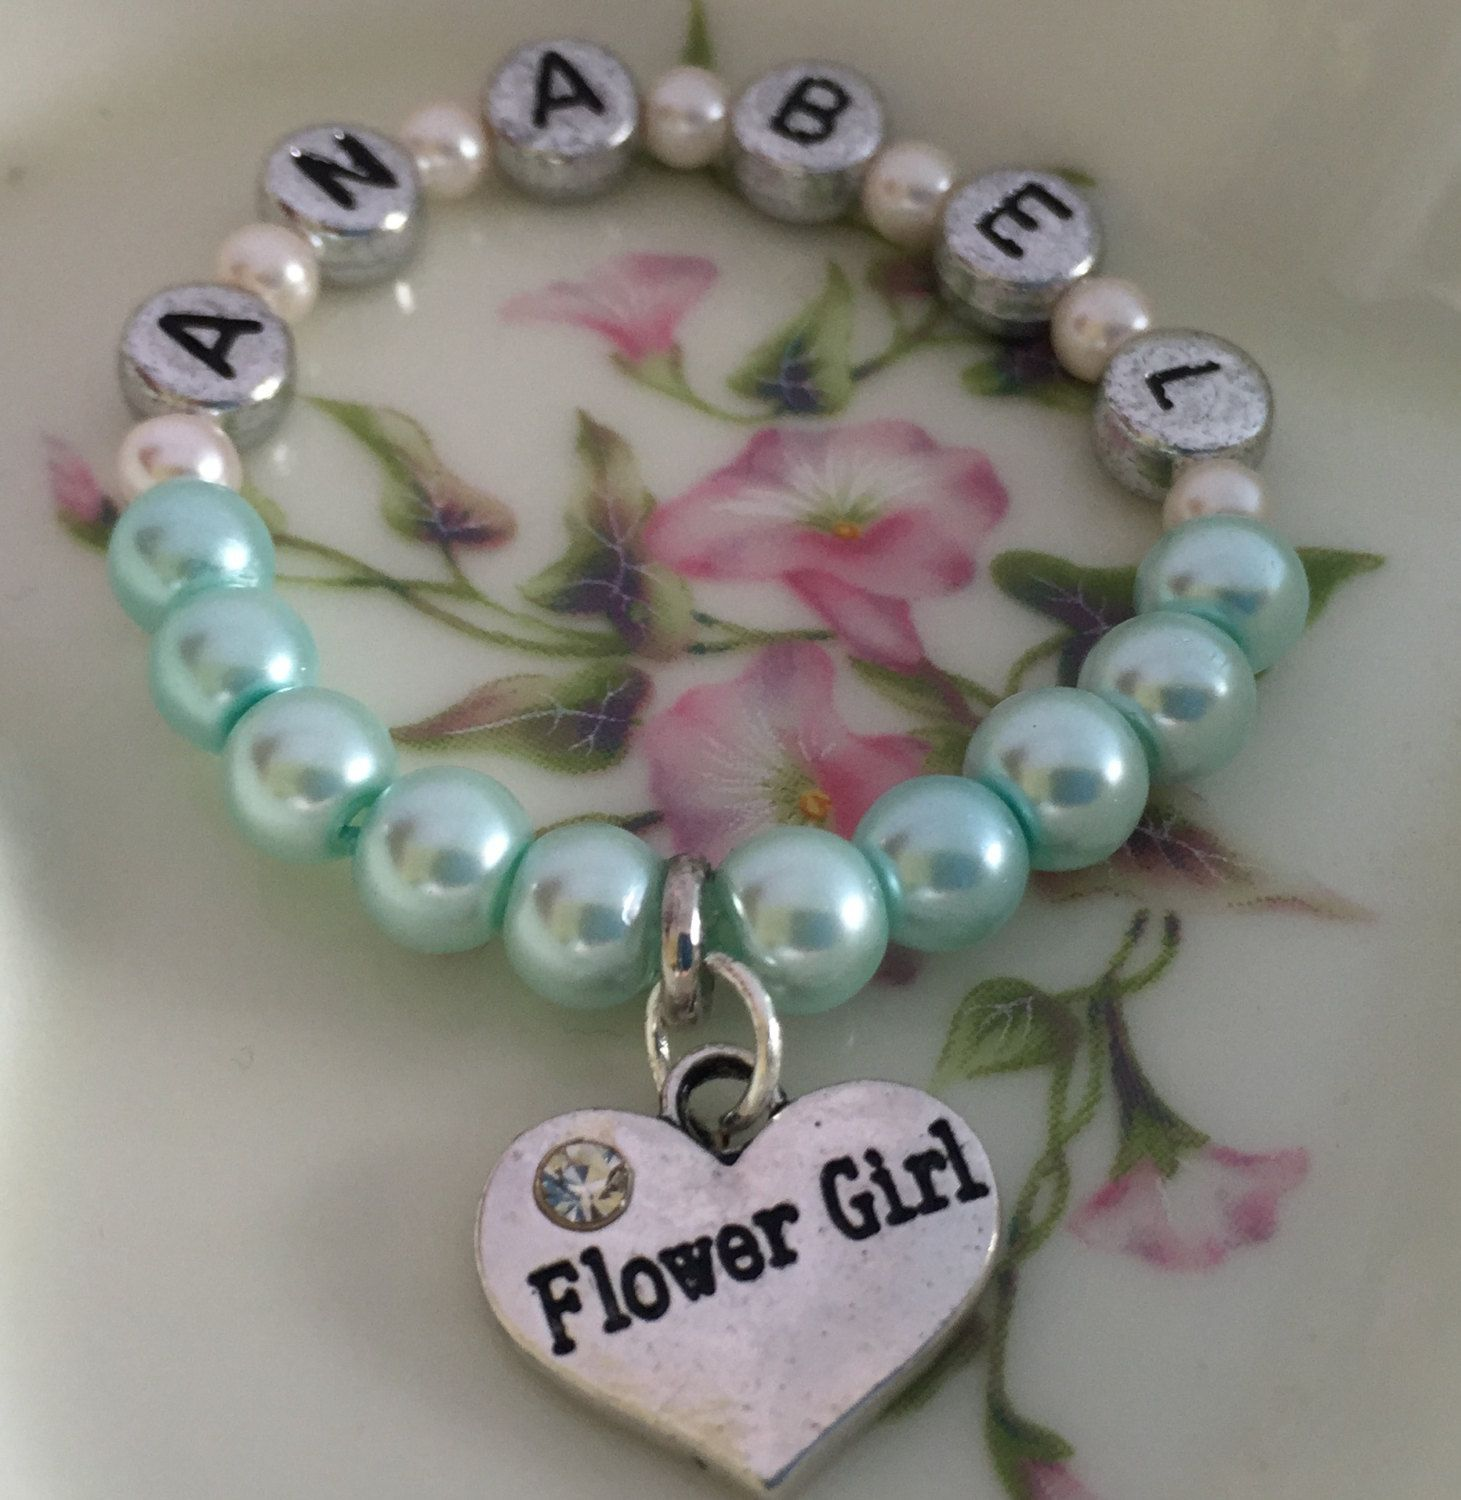 Customize bracelet choose lettering and charm to personalize